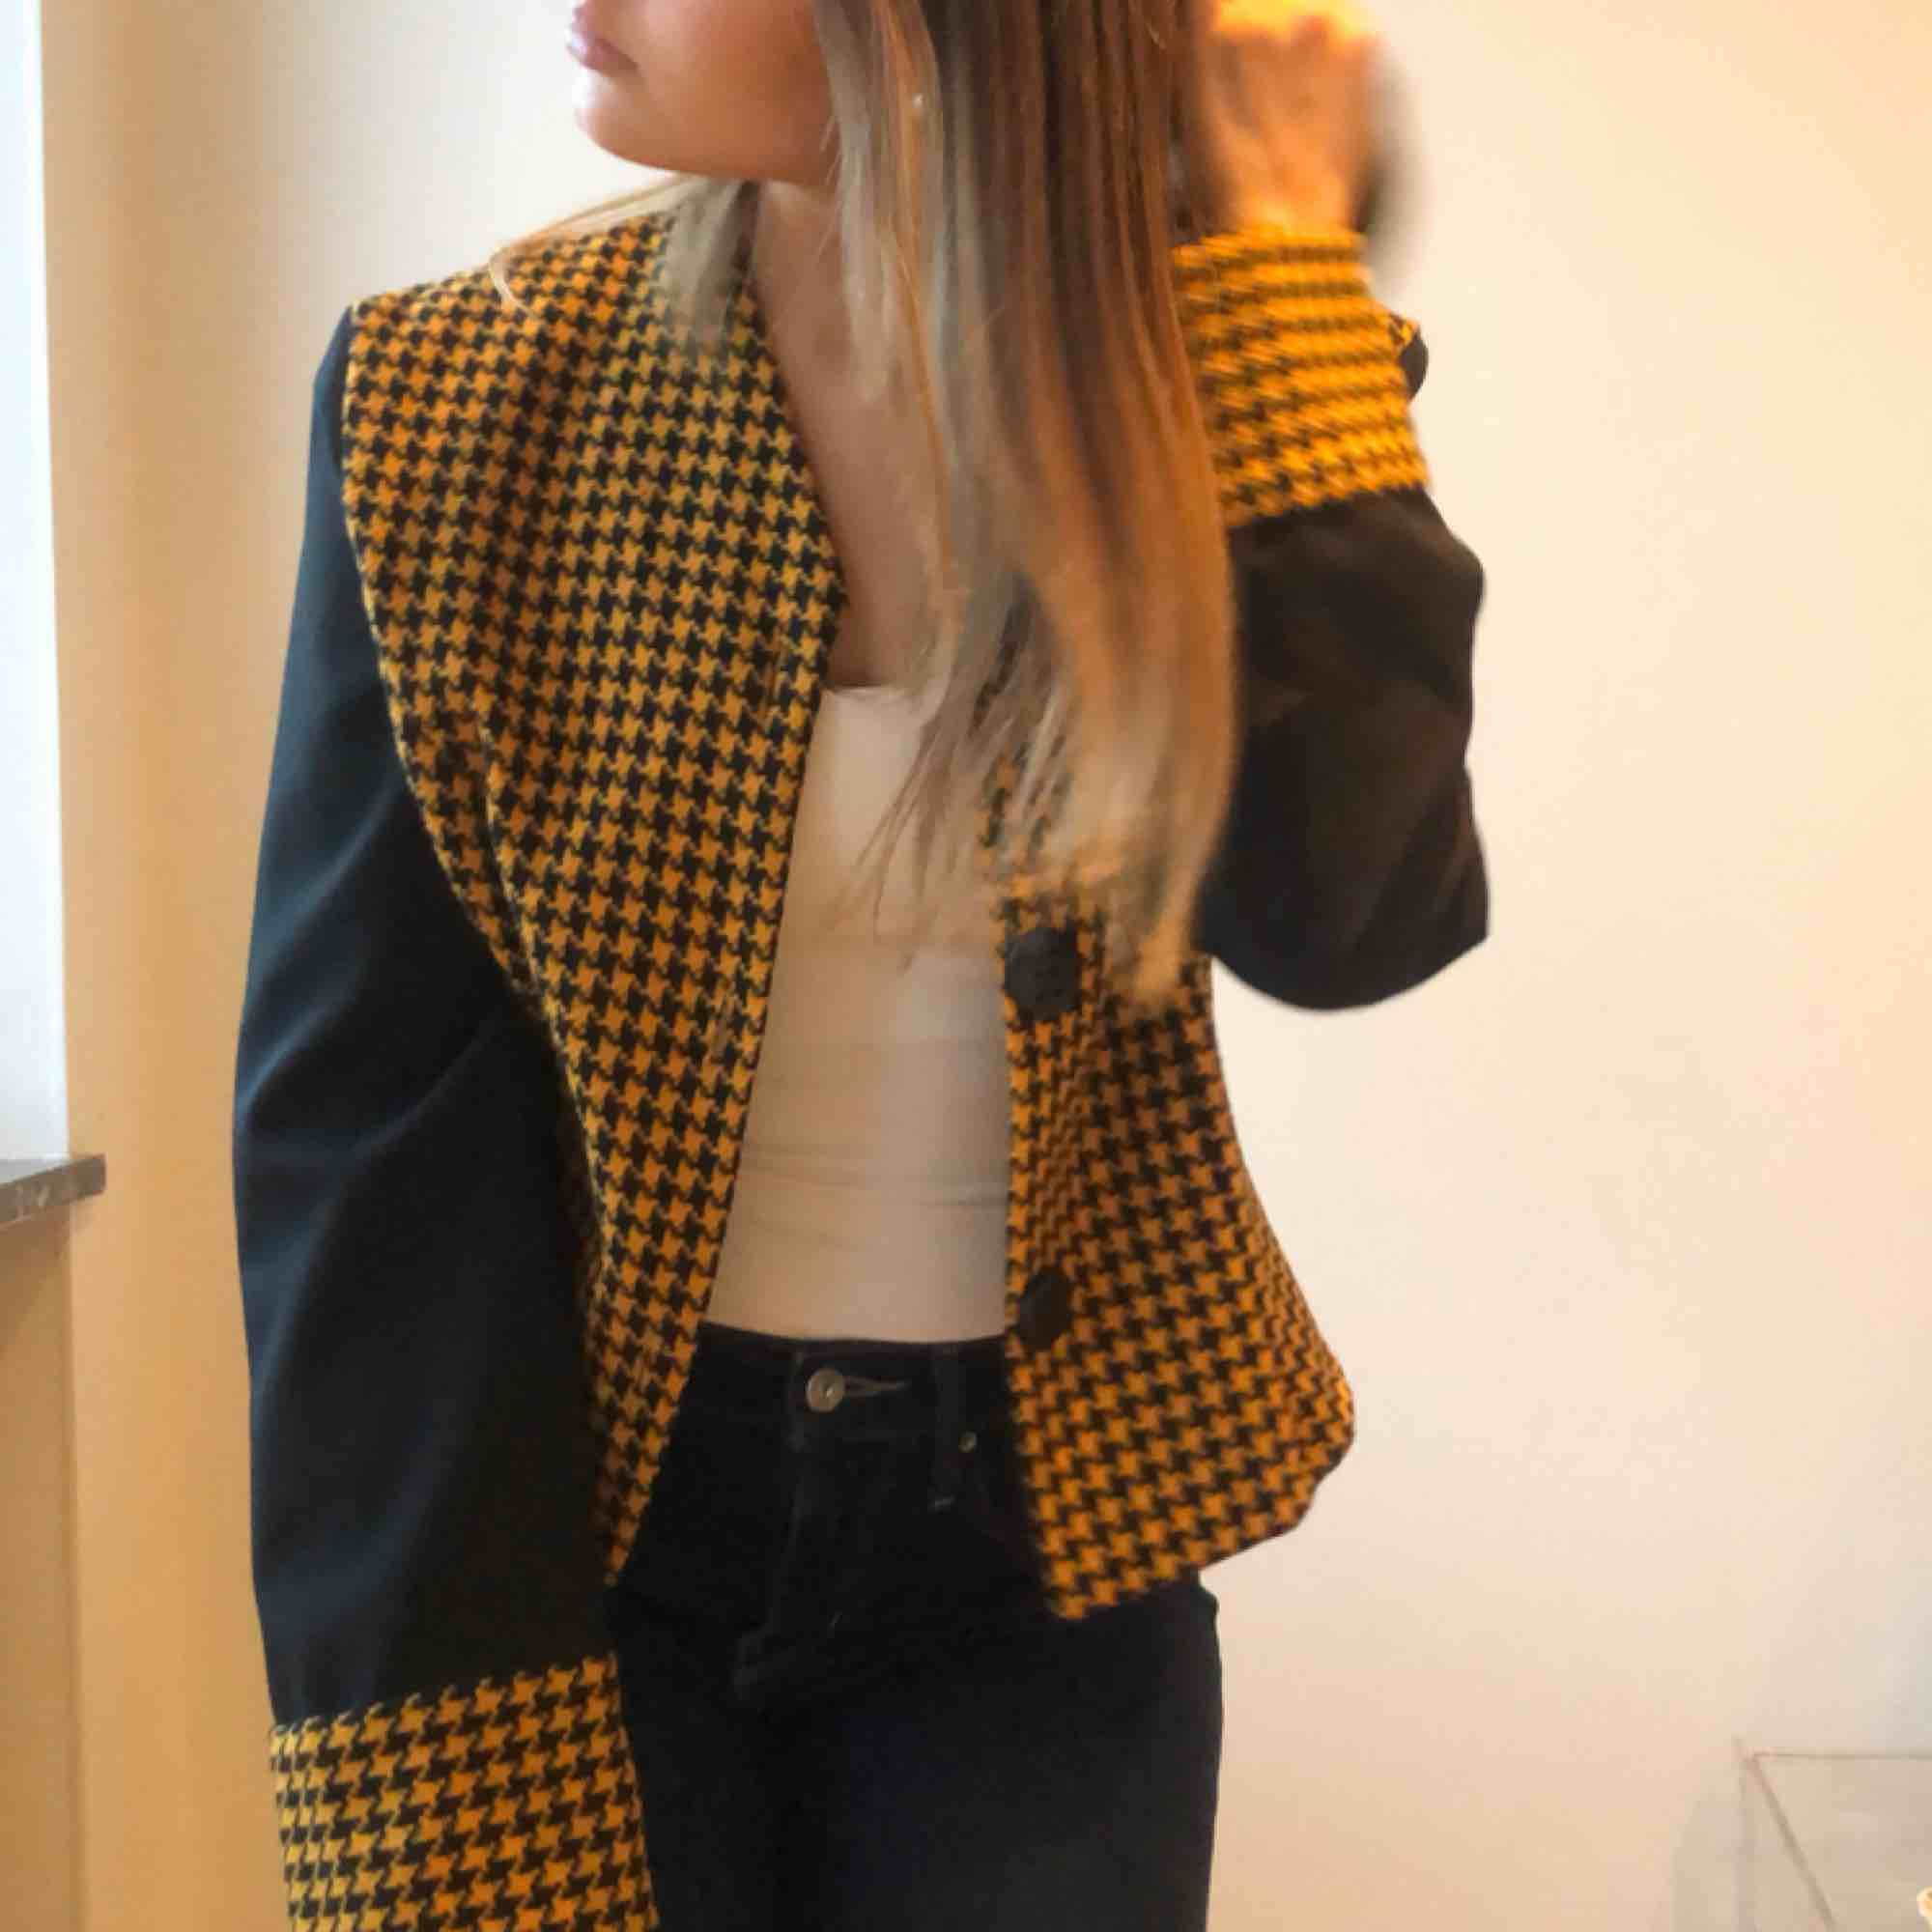 Cool black and yellow vintage jacket with checkered print. Jackor.